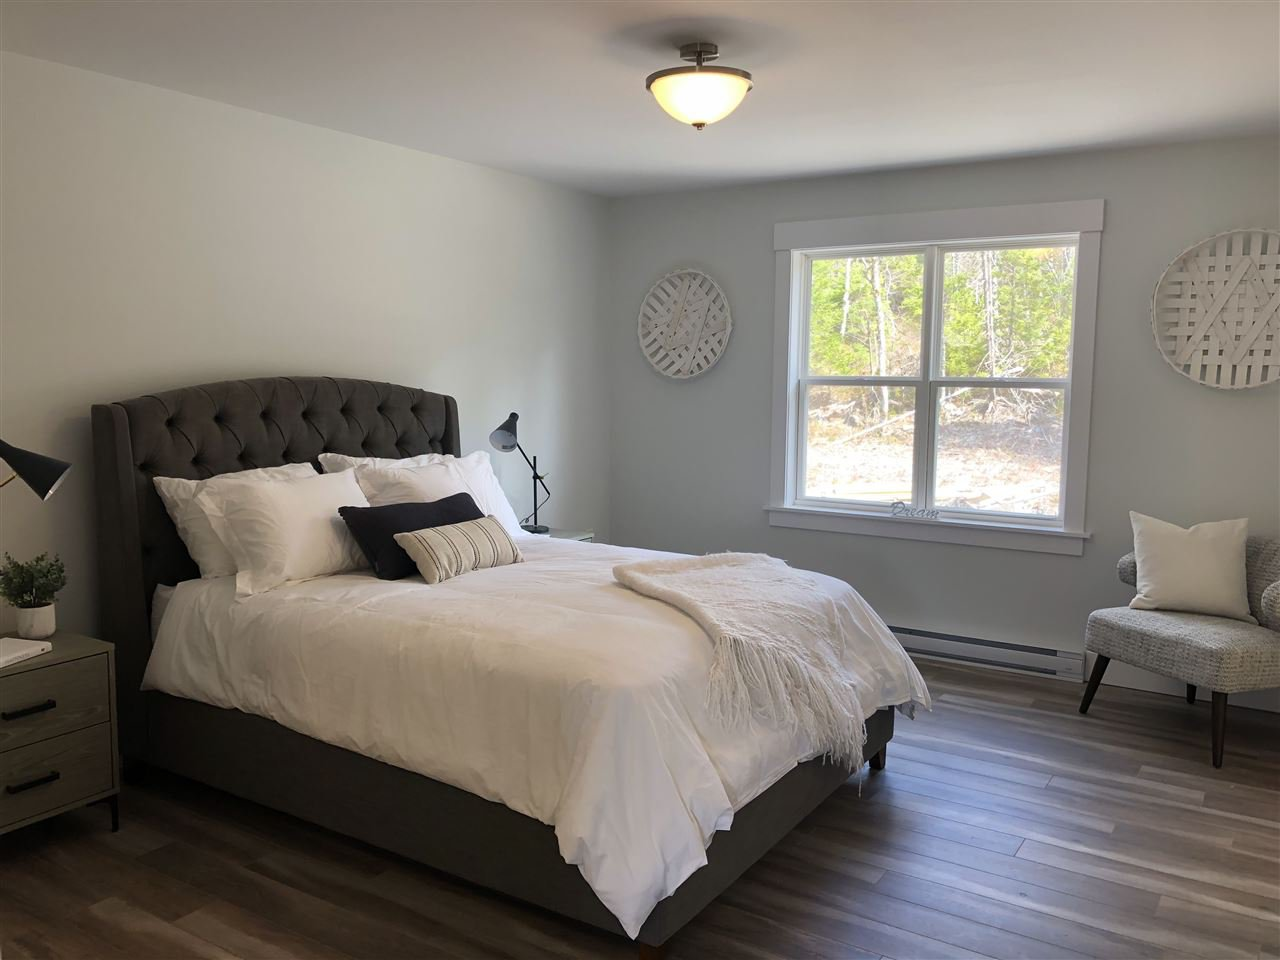 Photo 12: Photos: Lot 678 - 215 Confederation Avenue in Fall River: 30-Waverley, Fall River, Oakfield Residential for sale (Halifax-Dartmouth)  : MLS®# 201913206